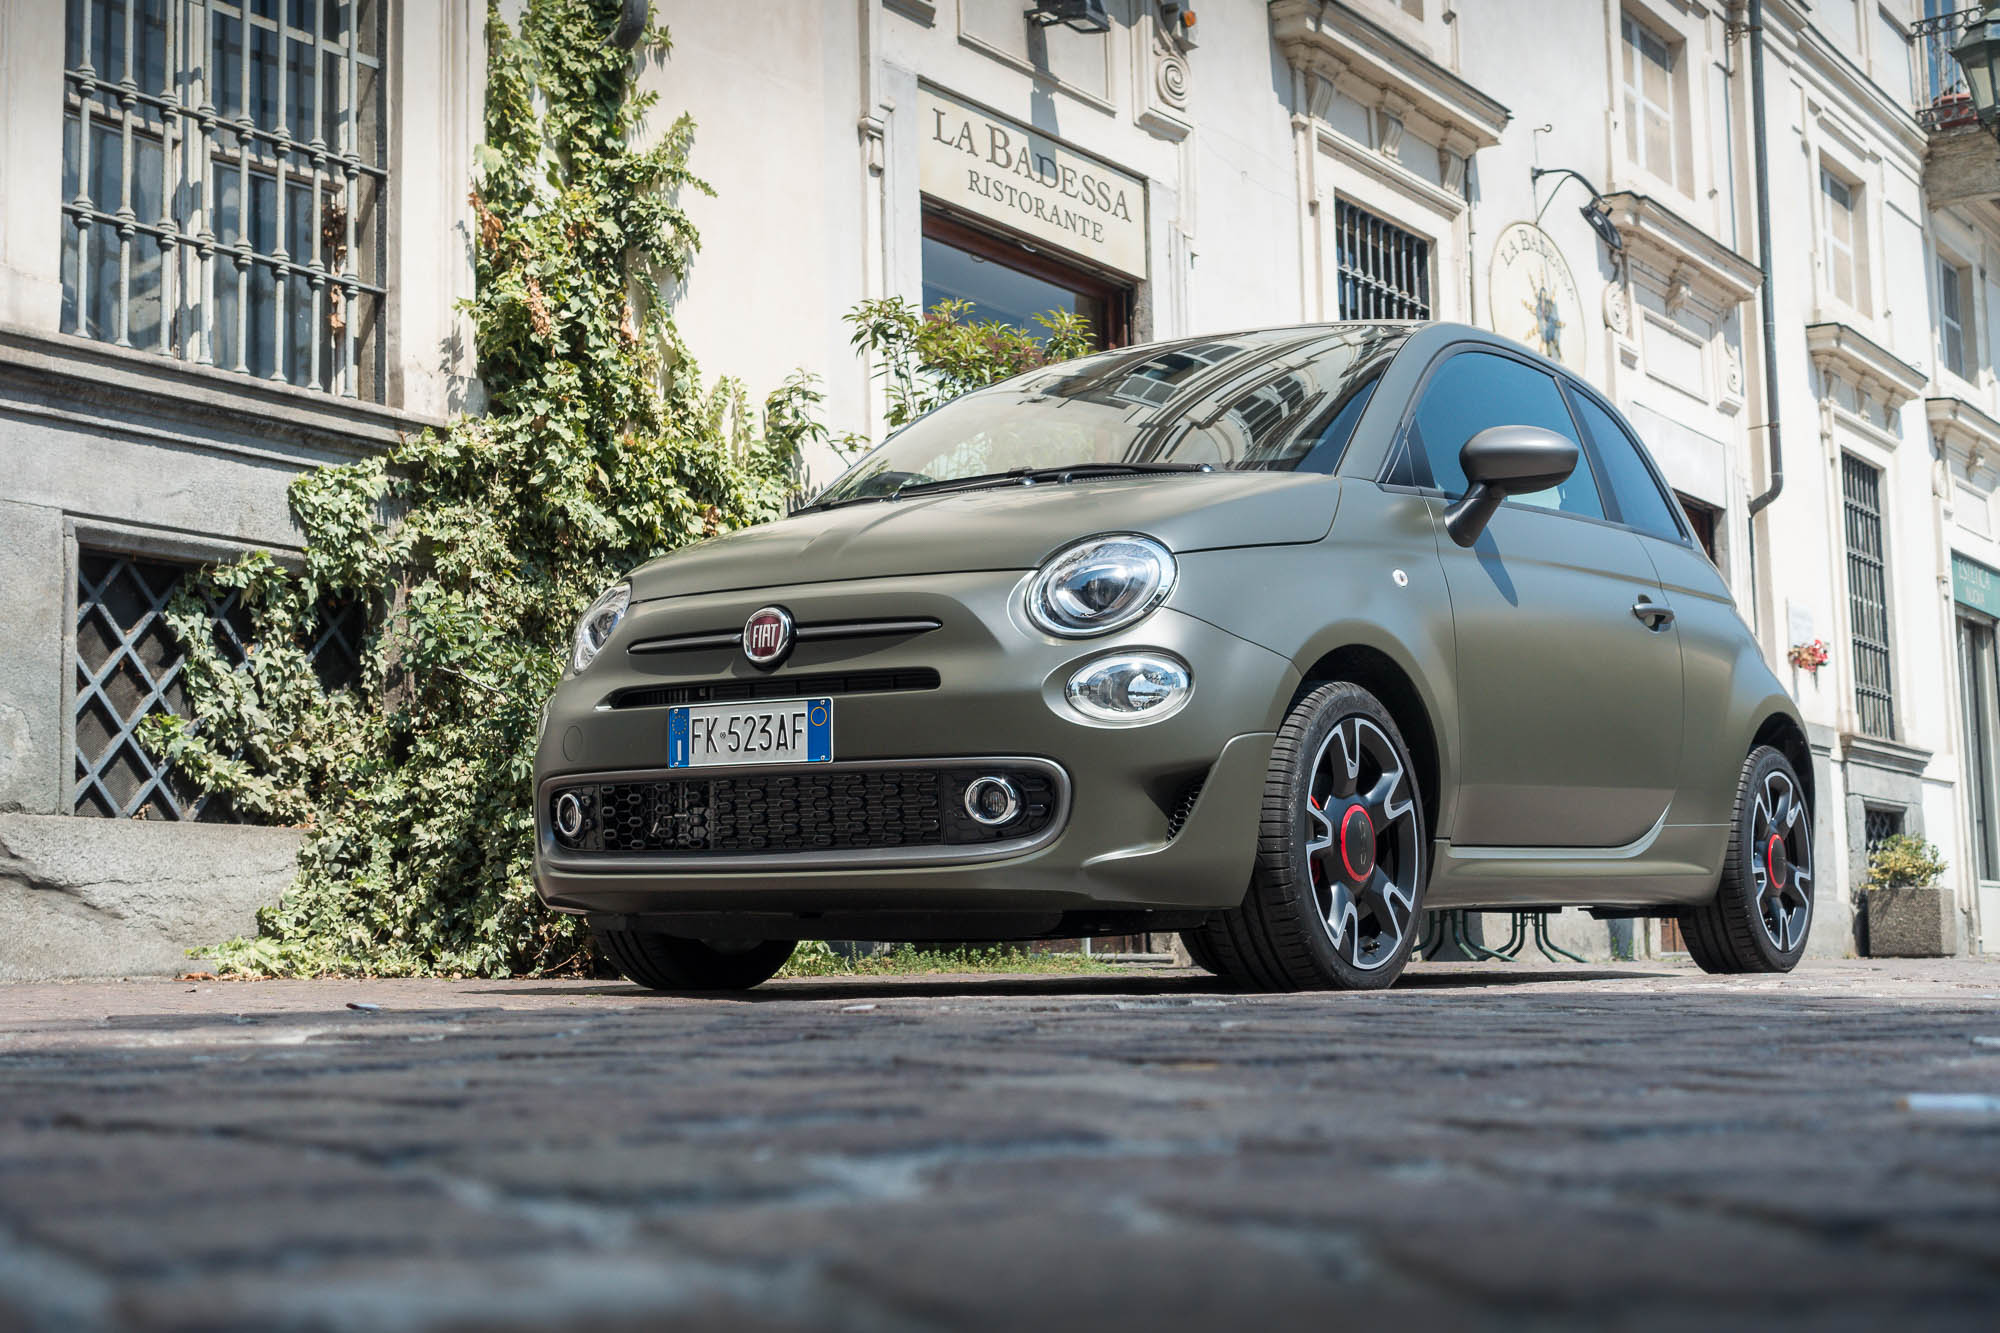 2017 Fiat 500s Review A Jovial Little Car Motor Verso